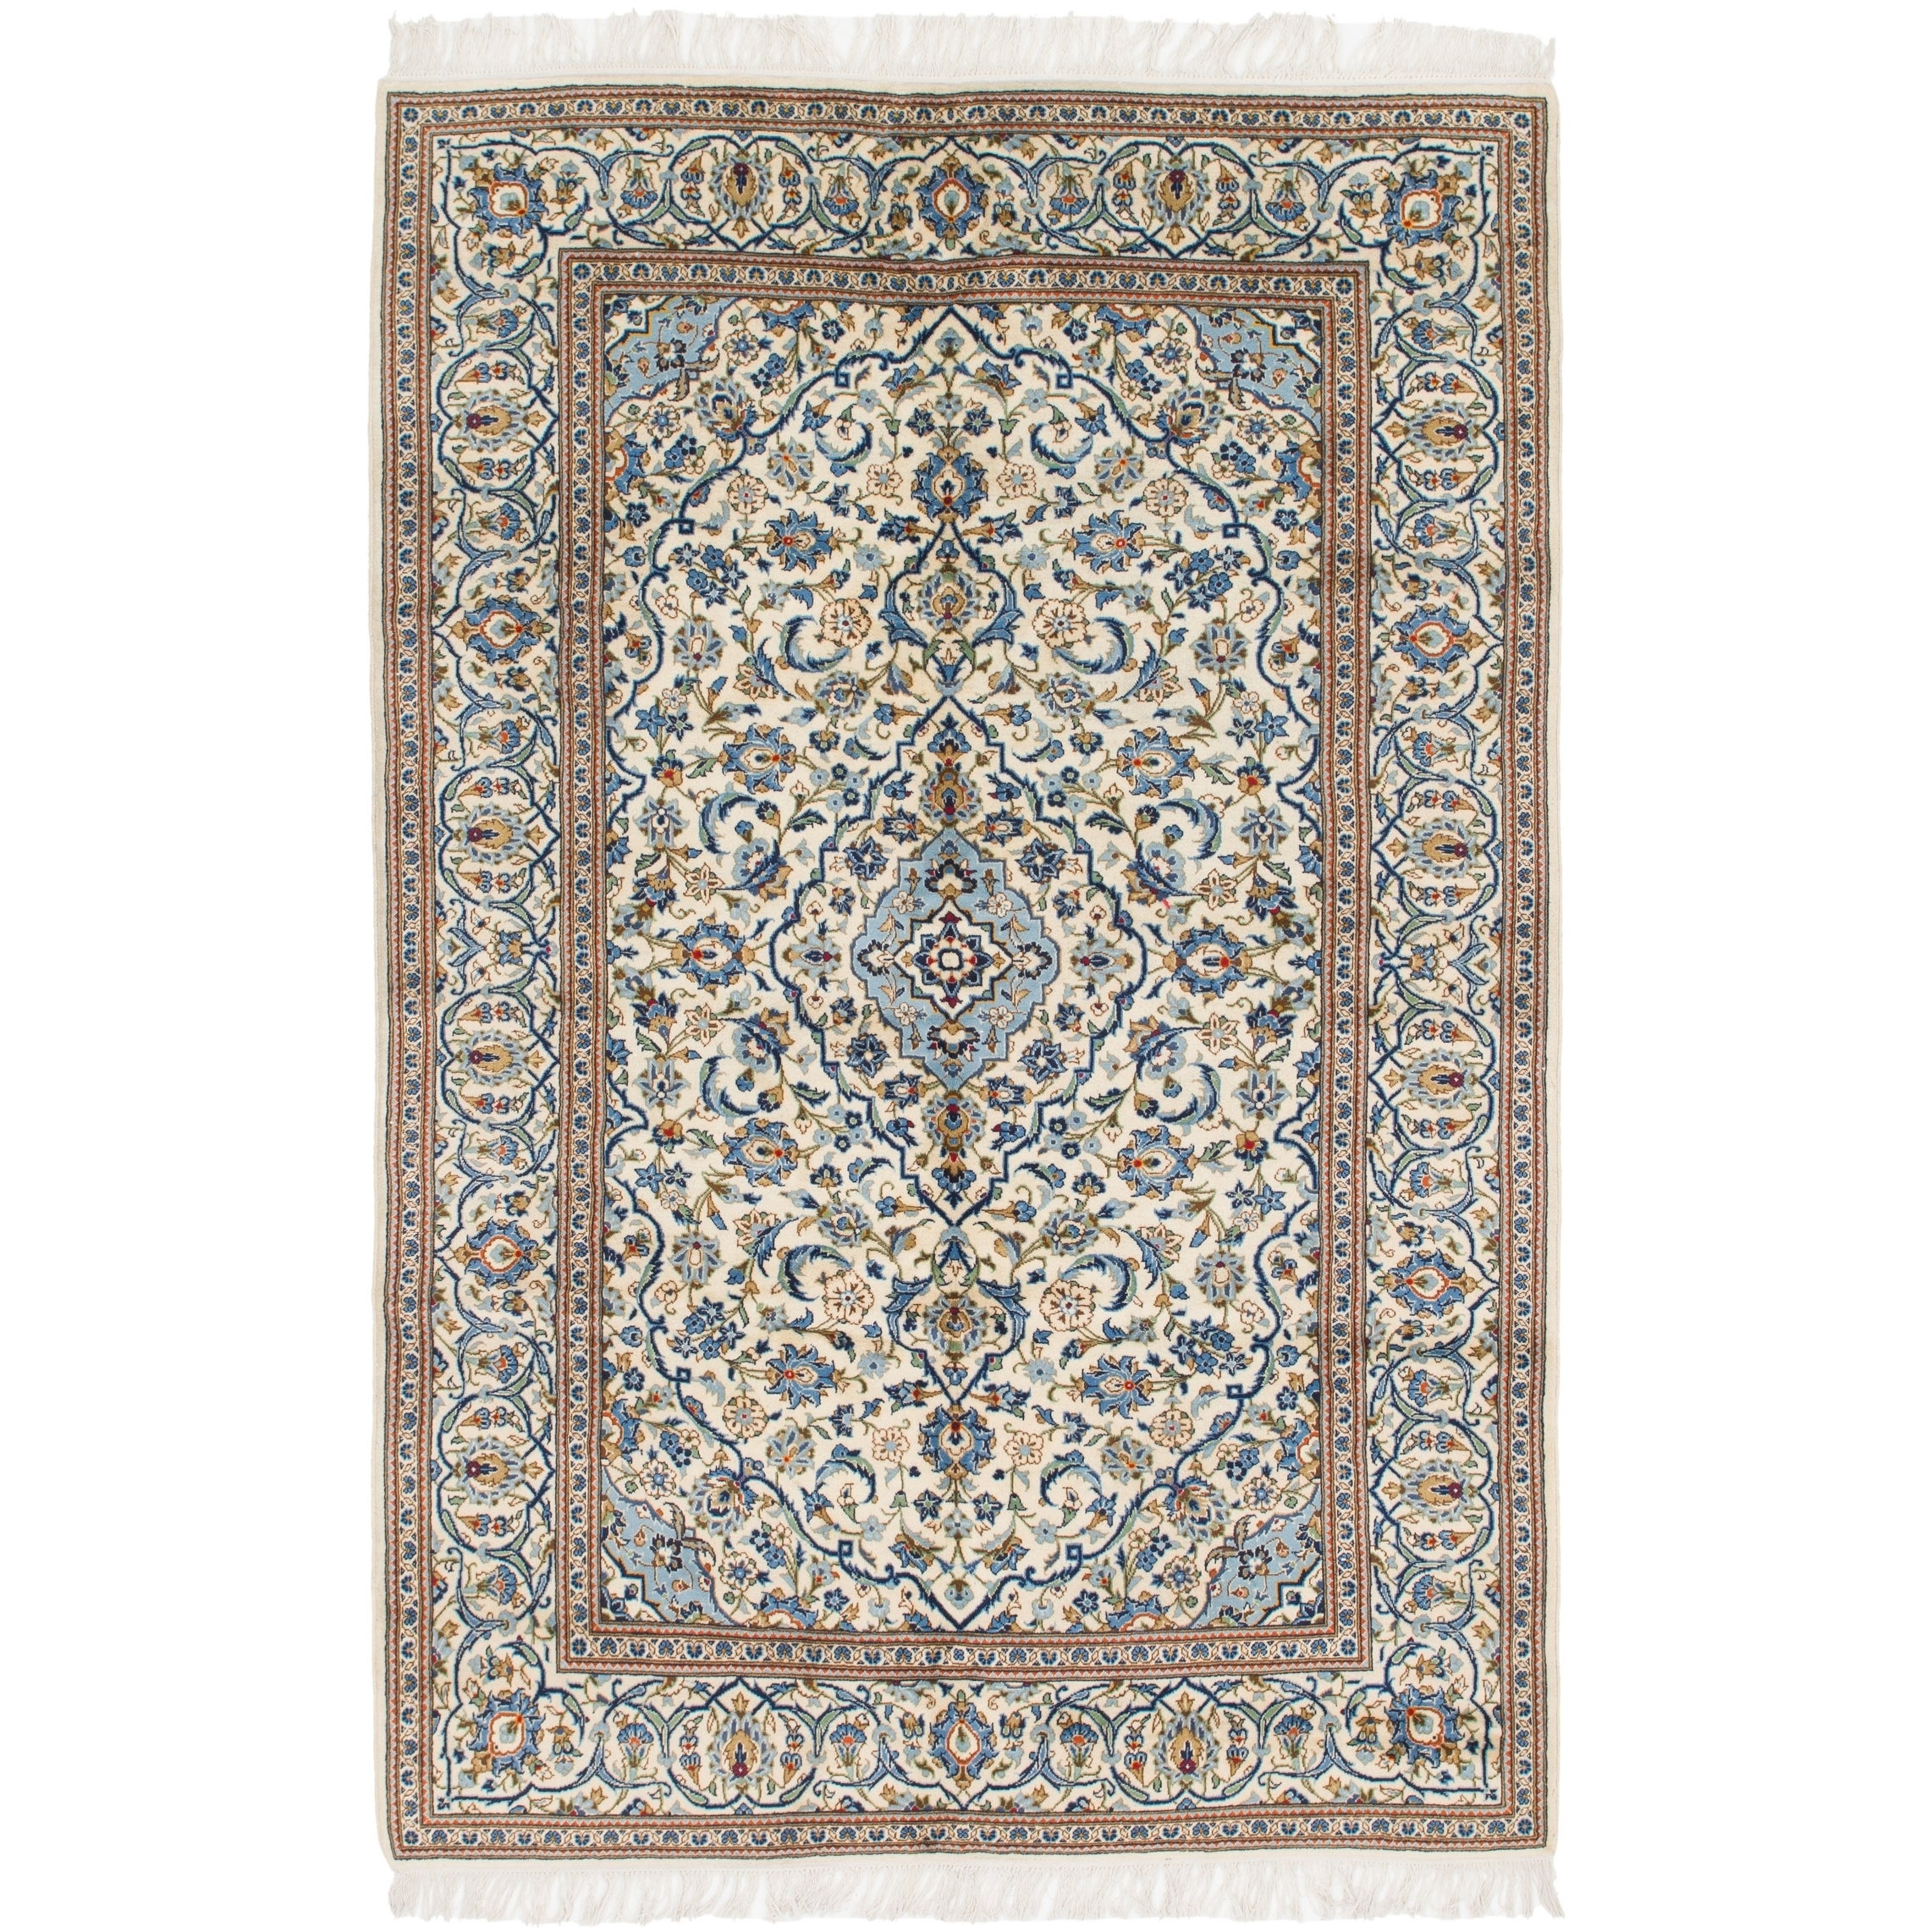 Hand Knotted Kashan Wool Area Rug - 6 6 x 10 (Ivory - 6 6 x 10)